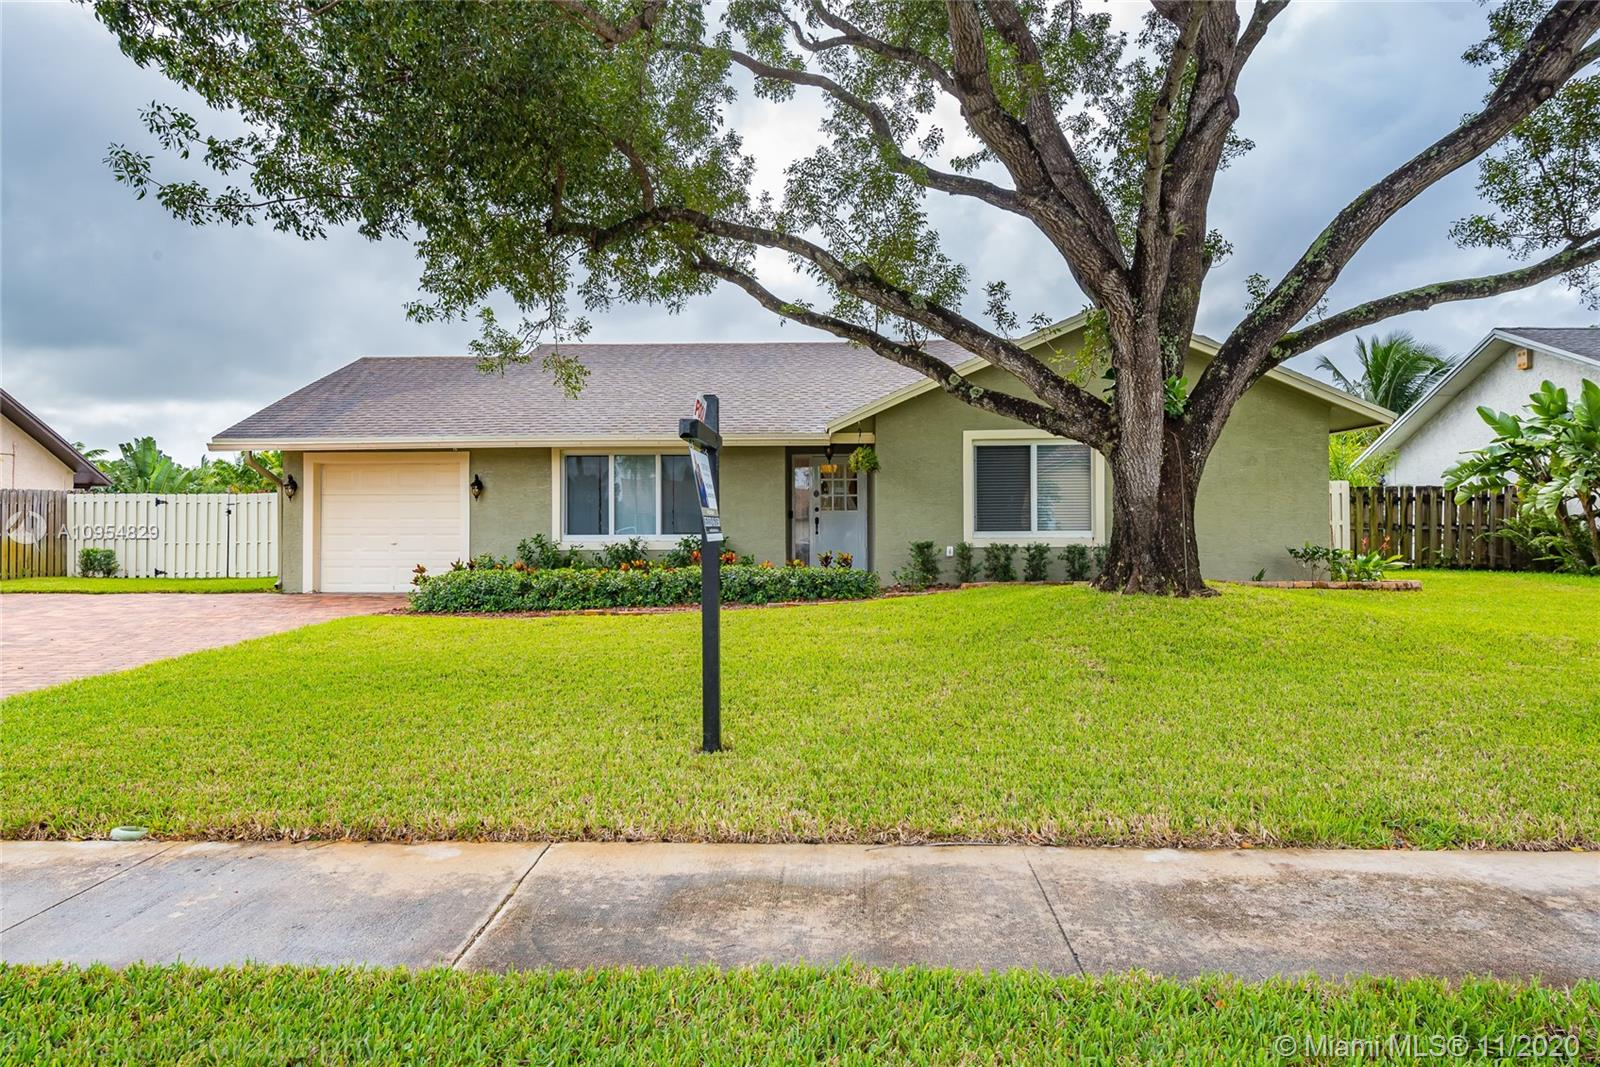 This stunning one-story home is located in the desirable neighborhood of Jacaranda Lakes, in Plantation.  This beautiful home offers from a private large living room area to a open concept kitchen and dining  area that faces the absolutely gorgeous swimming pool and coverage patio area.  Recent upgrades include a new roof from 2016, A/C replaced in 2018, water heater, refrigerator, impact windows and doors , pool fence , washer and dryer, smart electrical switch, approximately only one year old.  Absolutely  gorgeous !  don't miss it. Showing this Saturday 14th from 12:00 - 2:00 Pm